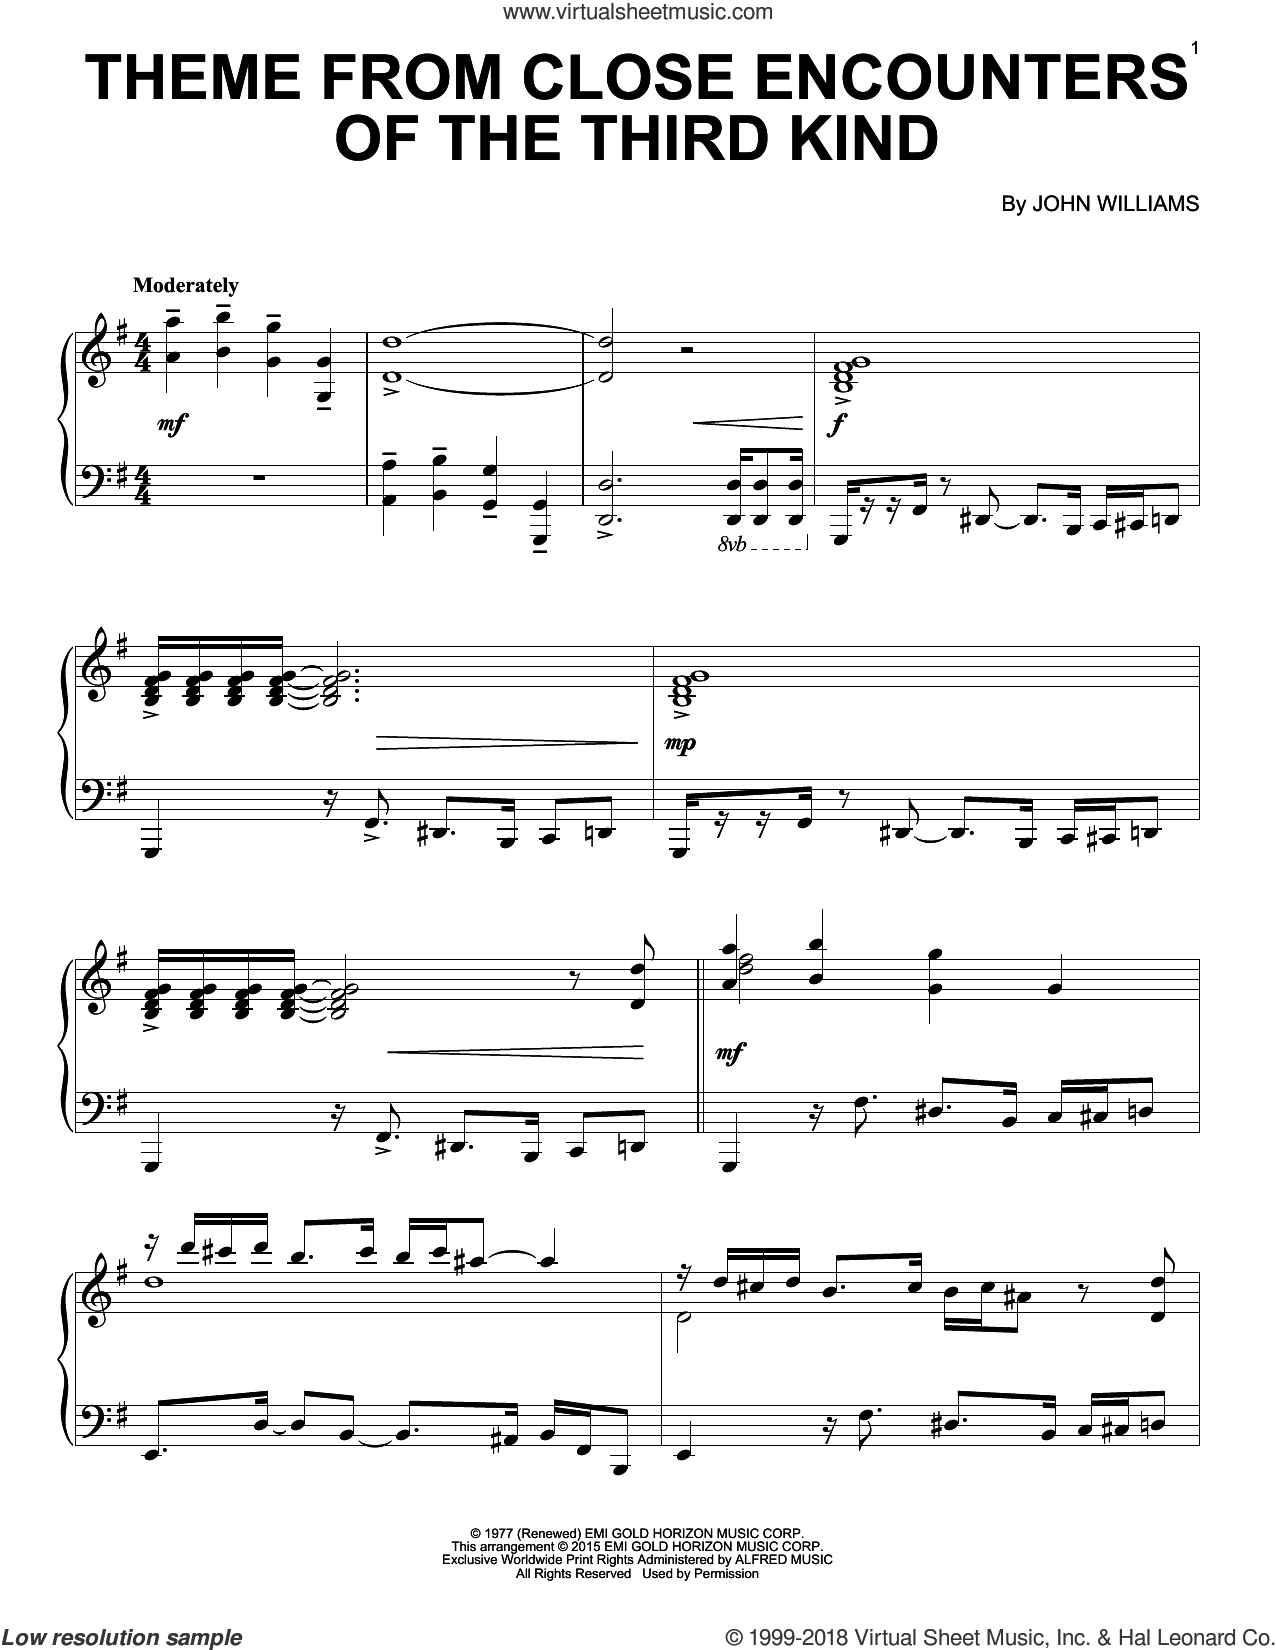 Theme From Close Encounters Of The Third Kind sheet music for piano solo by John Williams. Score Image Preview.